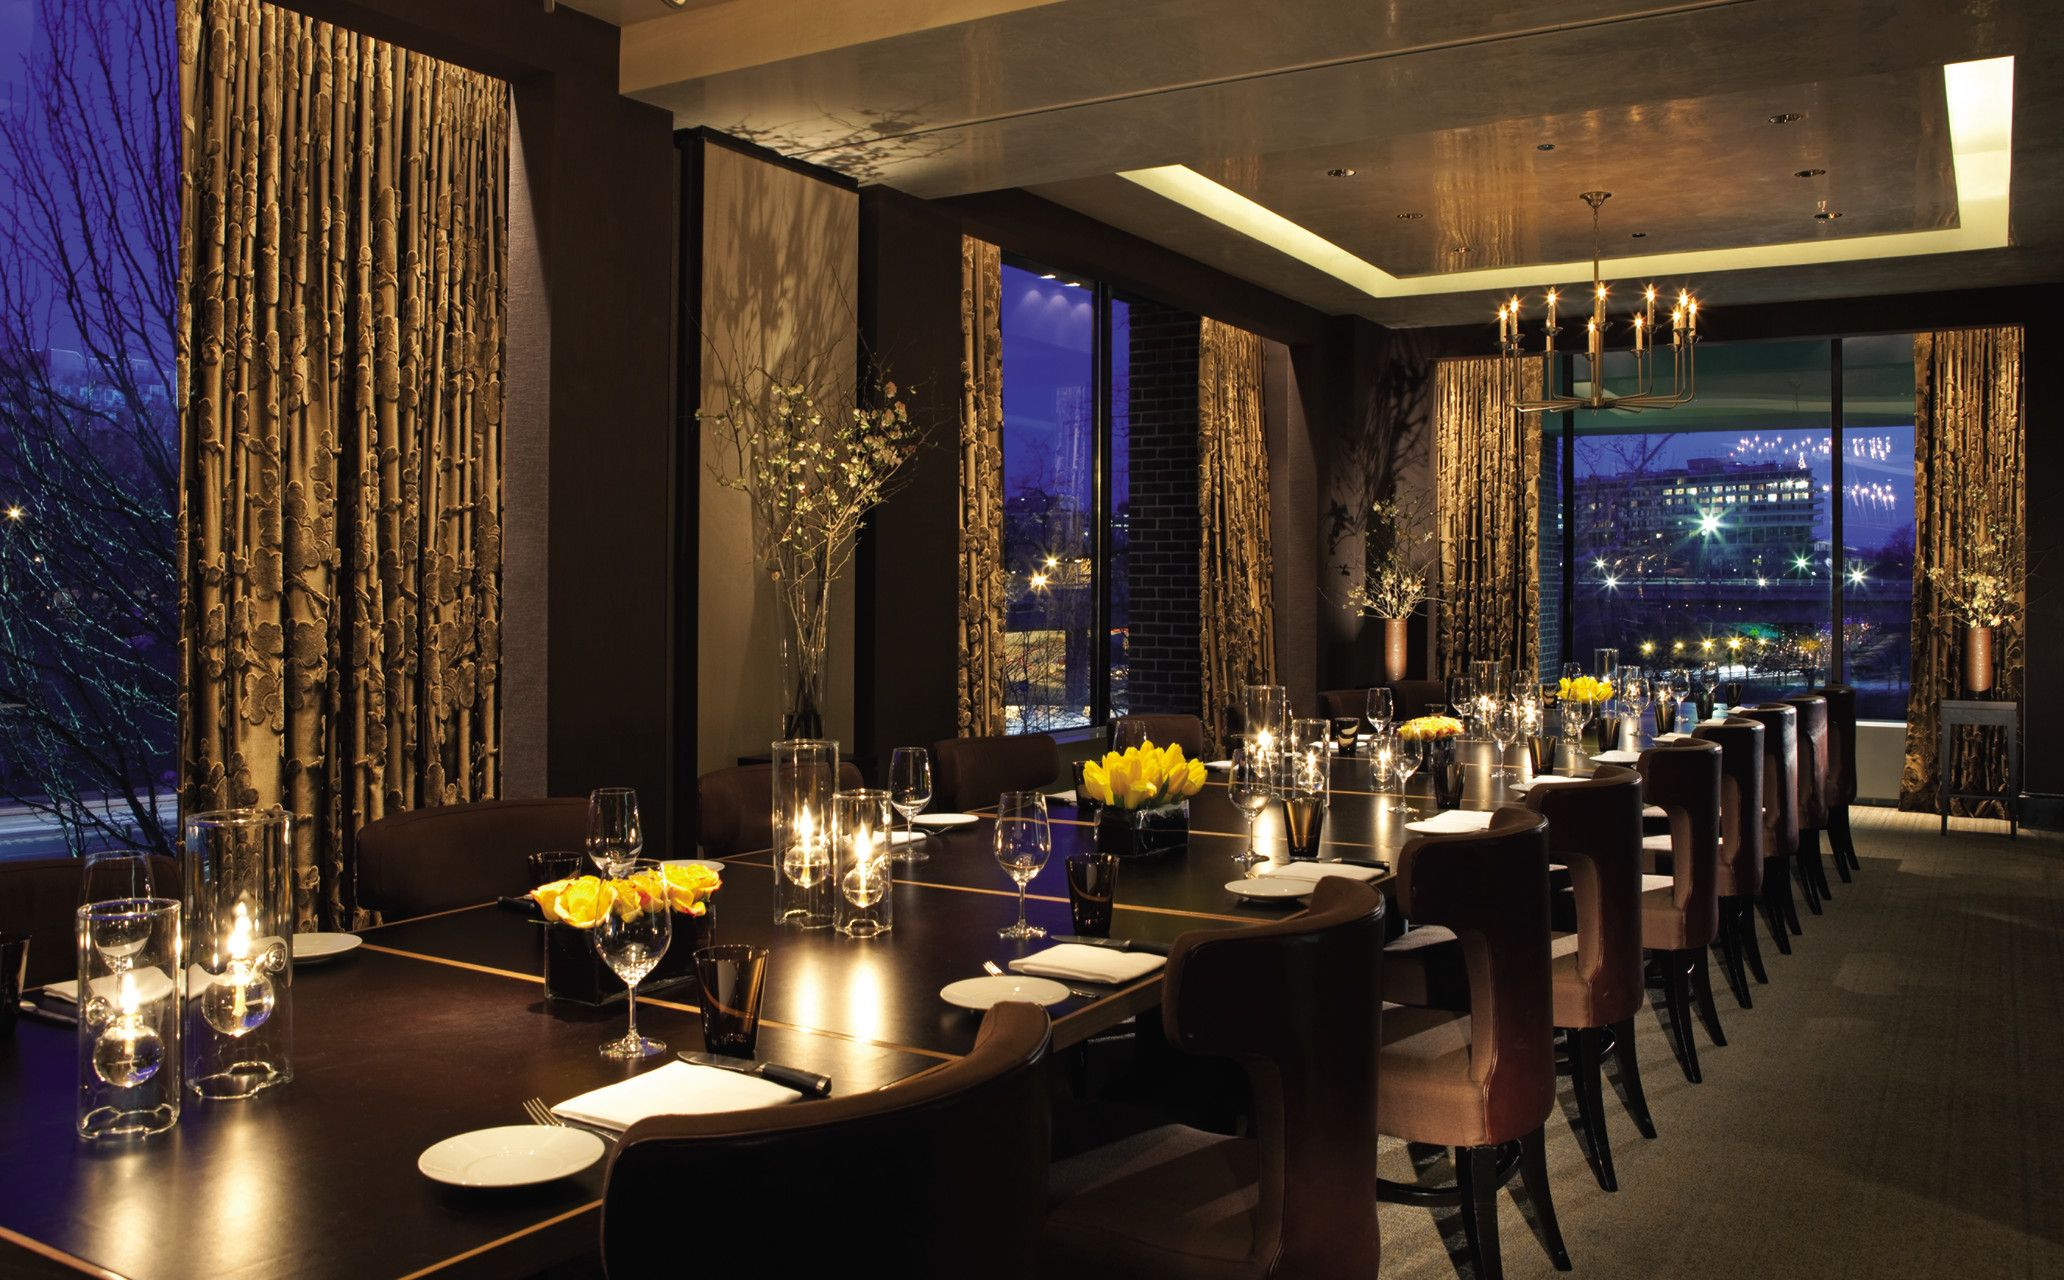 Best Private Dining Rooms Nyc Painting bourbon steak private dining room at the four seasons  washington